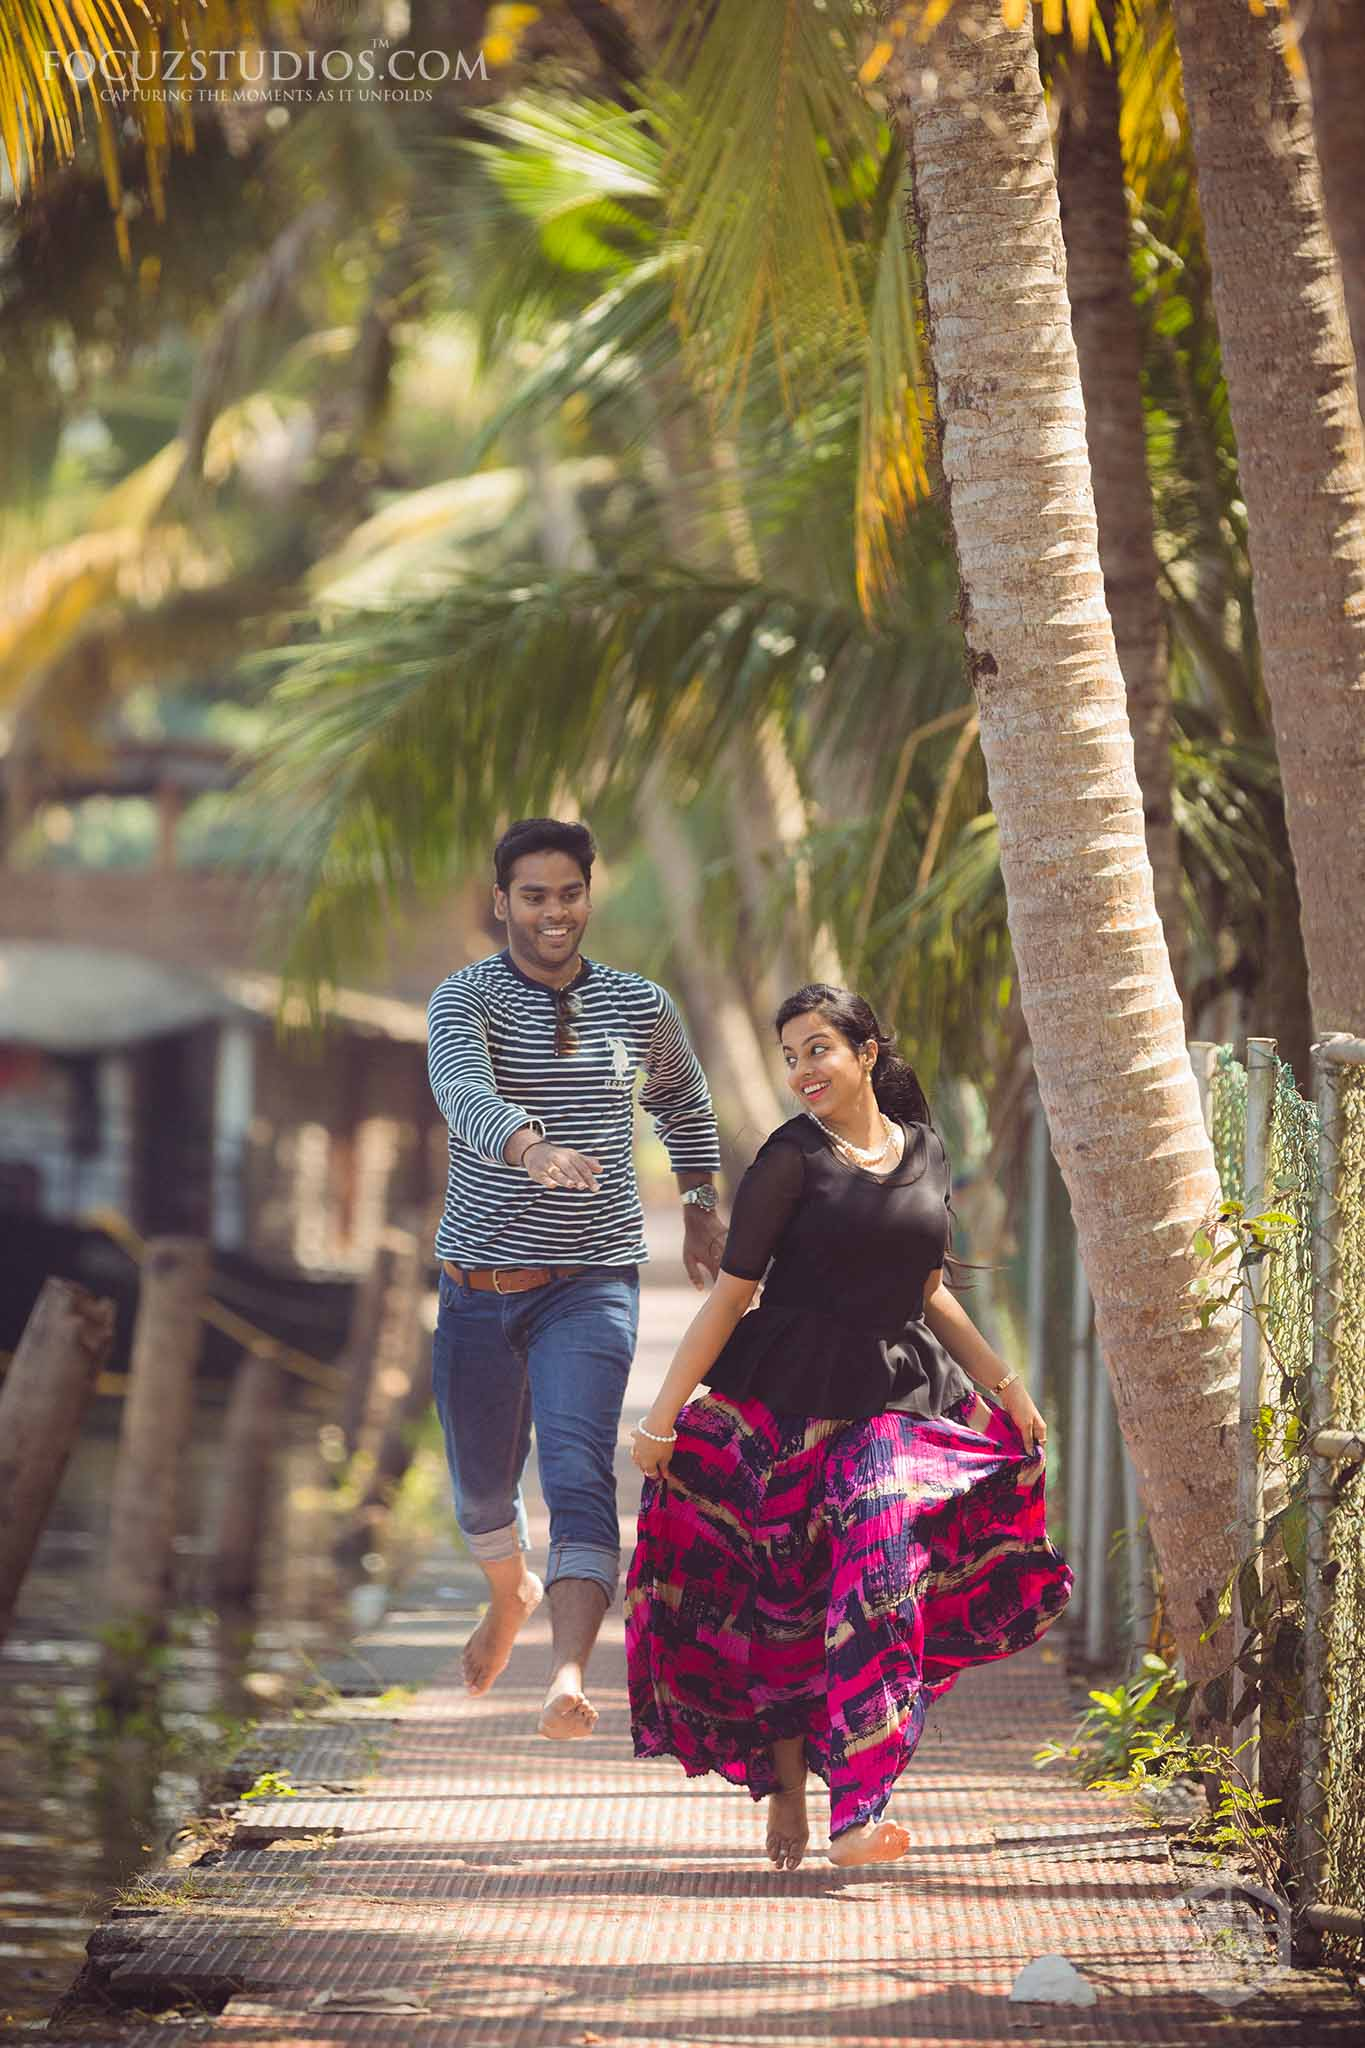 Kerala Wedding Photography Videos: Kerala Falling In Love With Tamilnadu